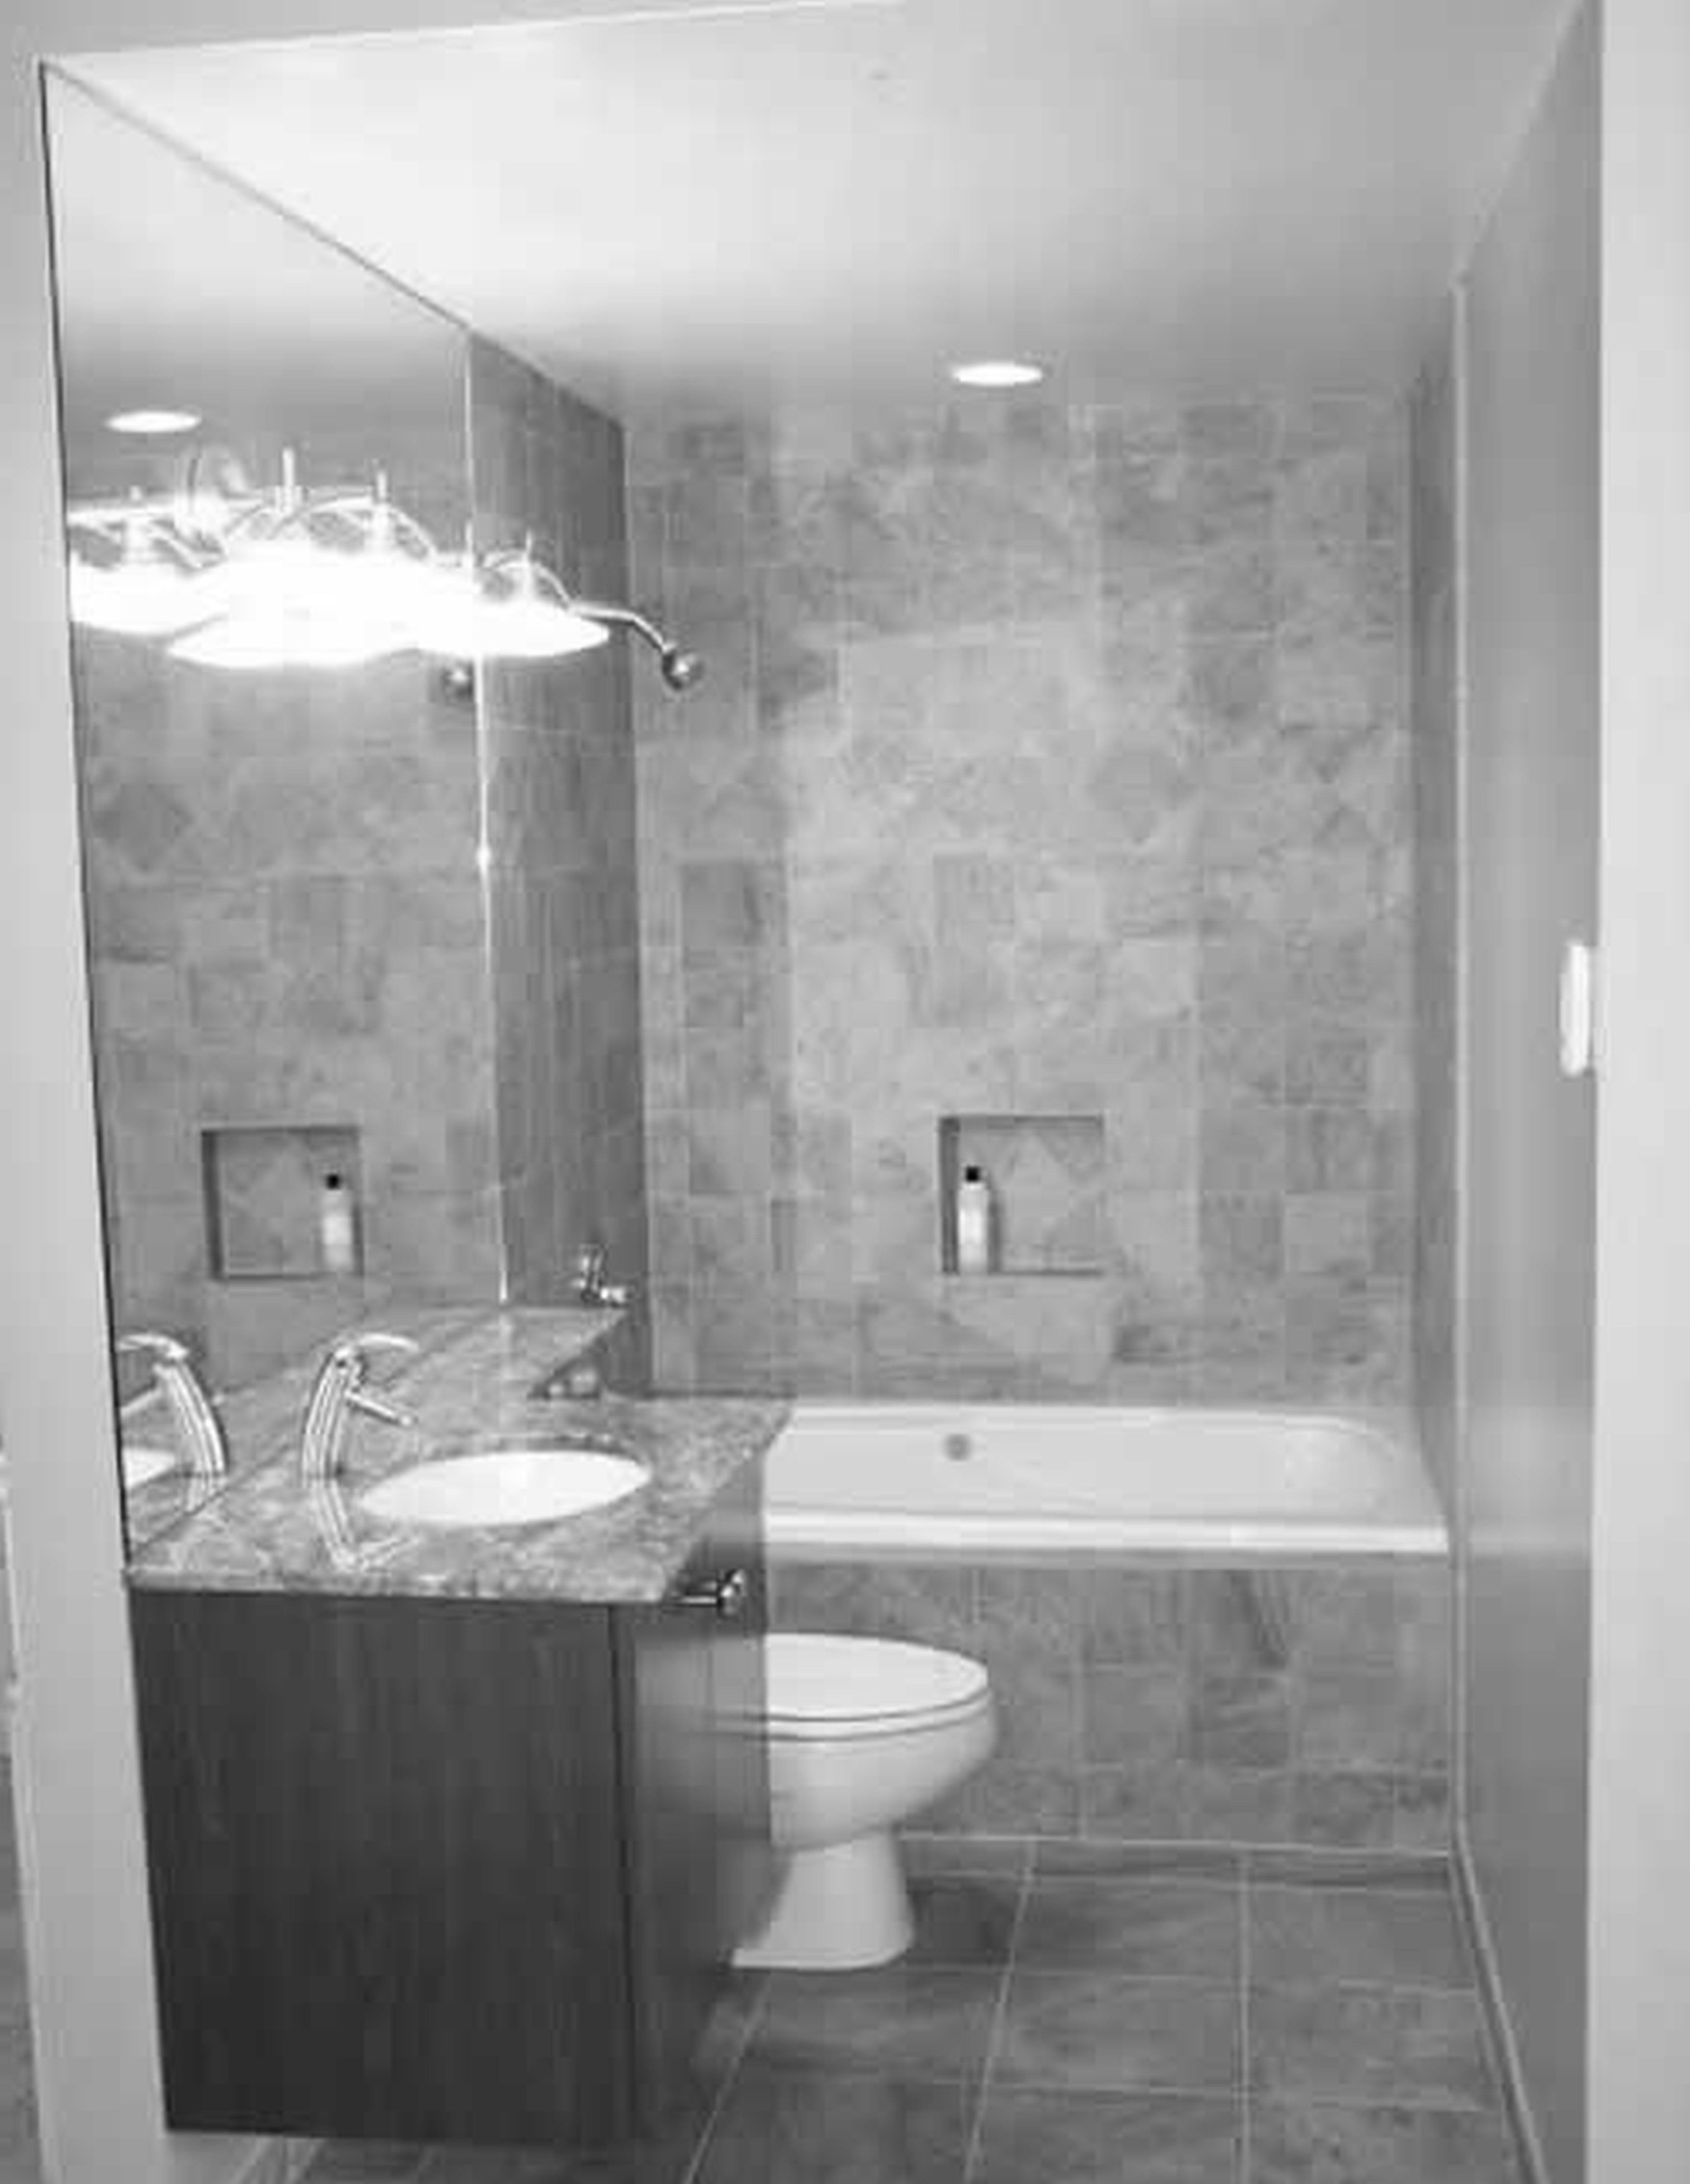 It is because bathroom and showering are the most private spaces for oneself  Read more